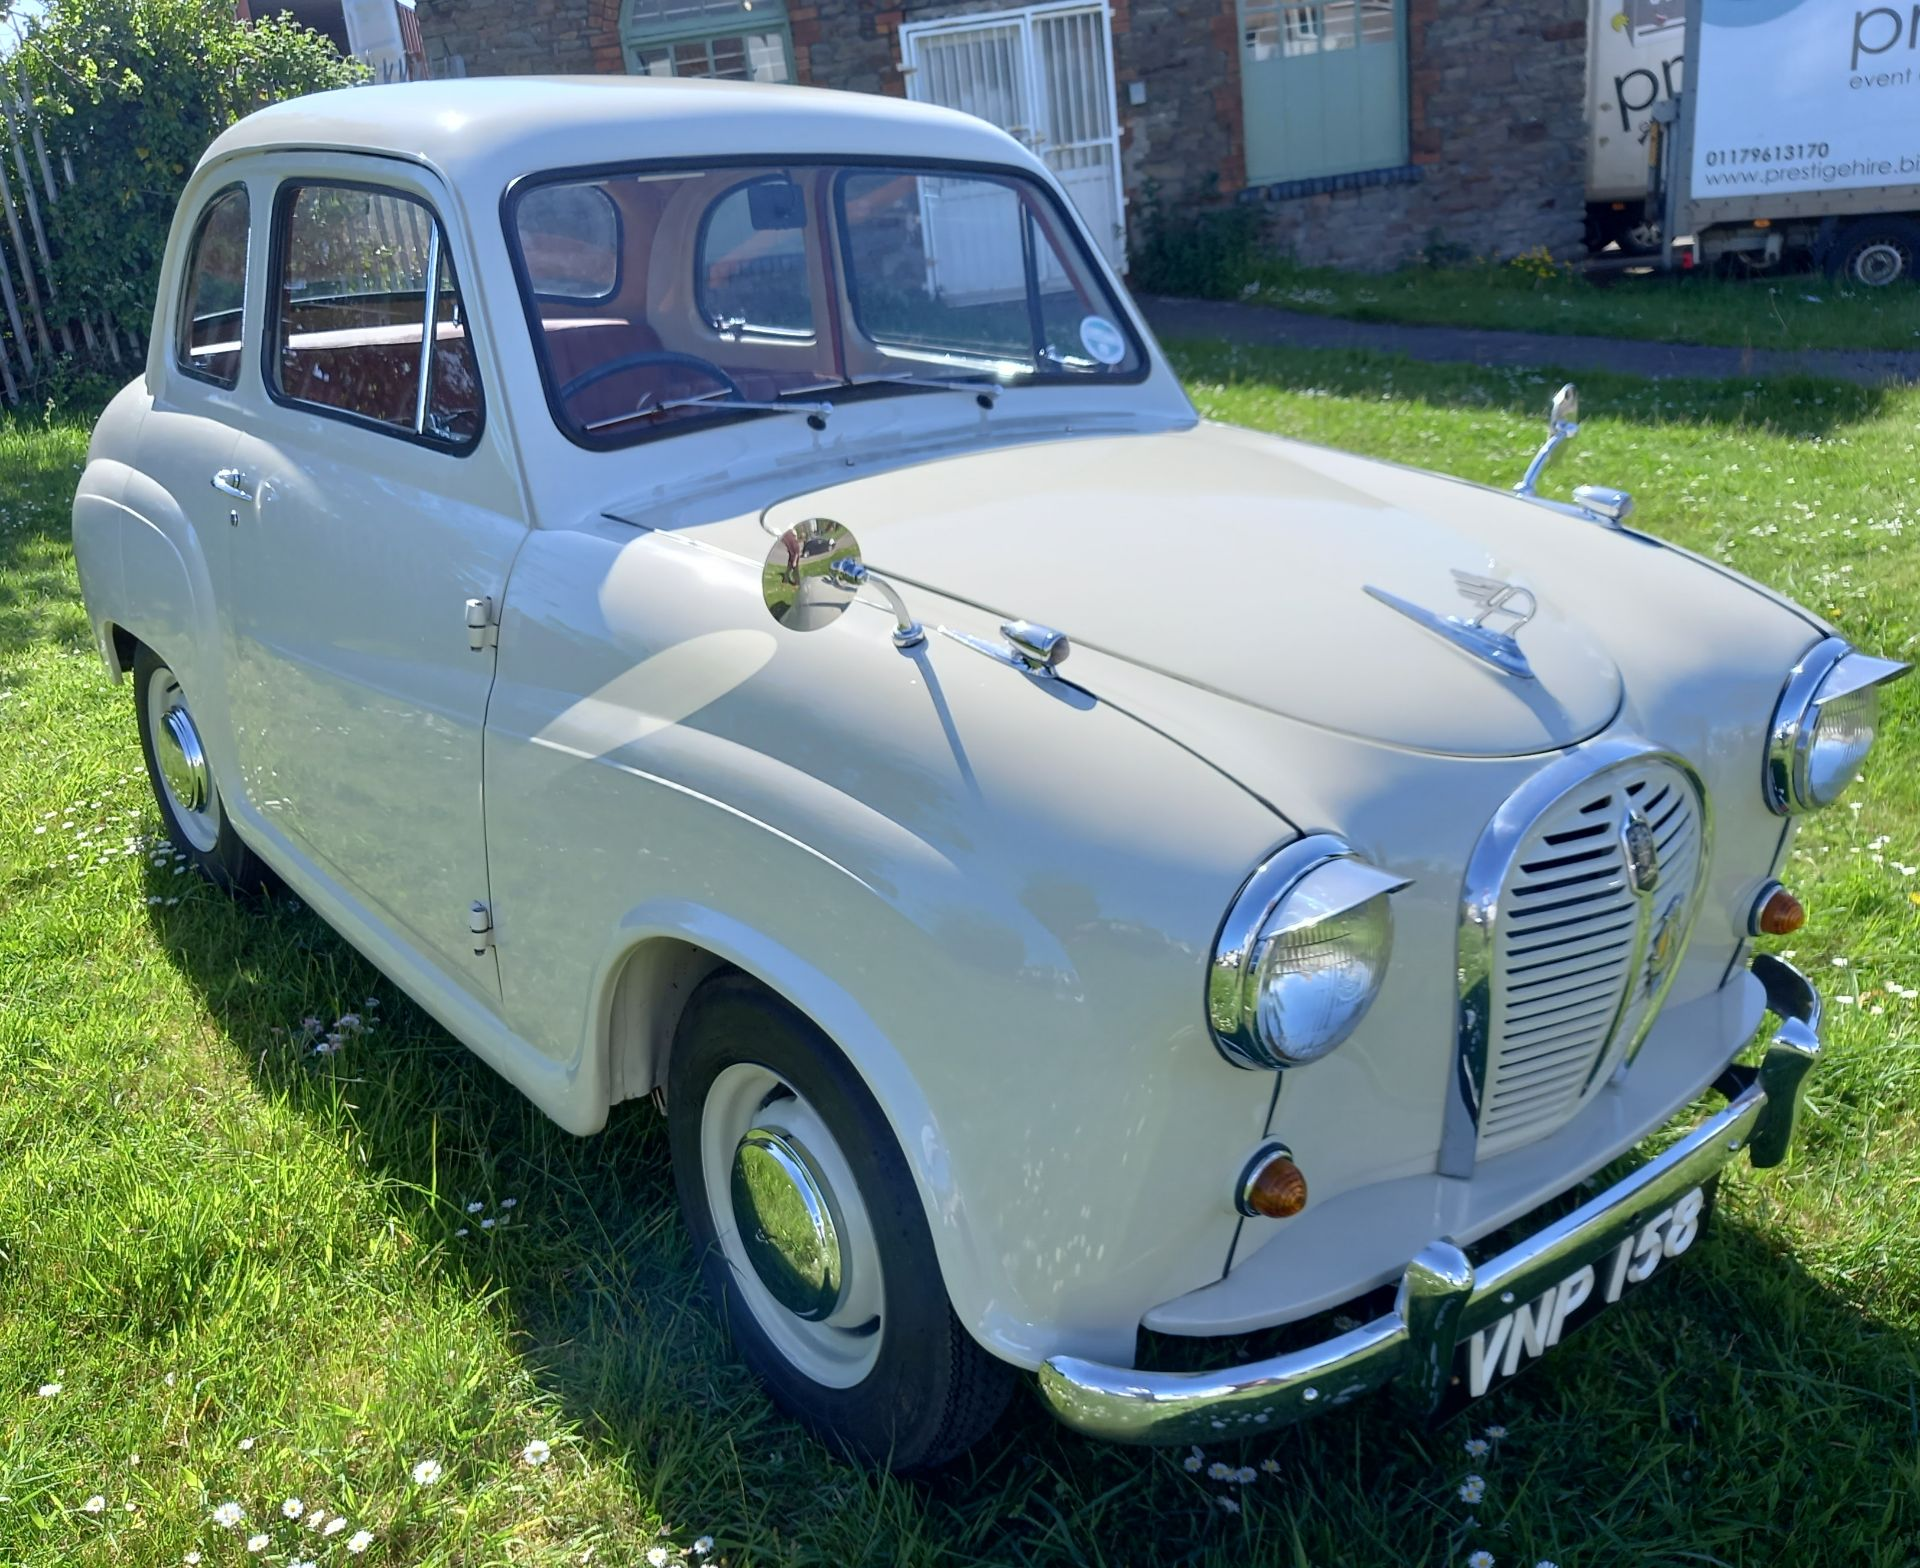 VNP 158 - 1958 AUSTIN A35 SALOON - 948CC - FULLY RESTORED CLASSIC CAR - Image 3 of 24